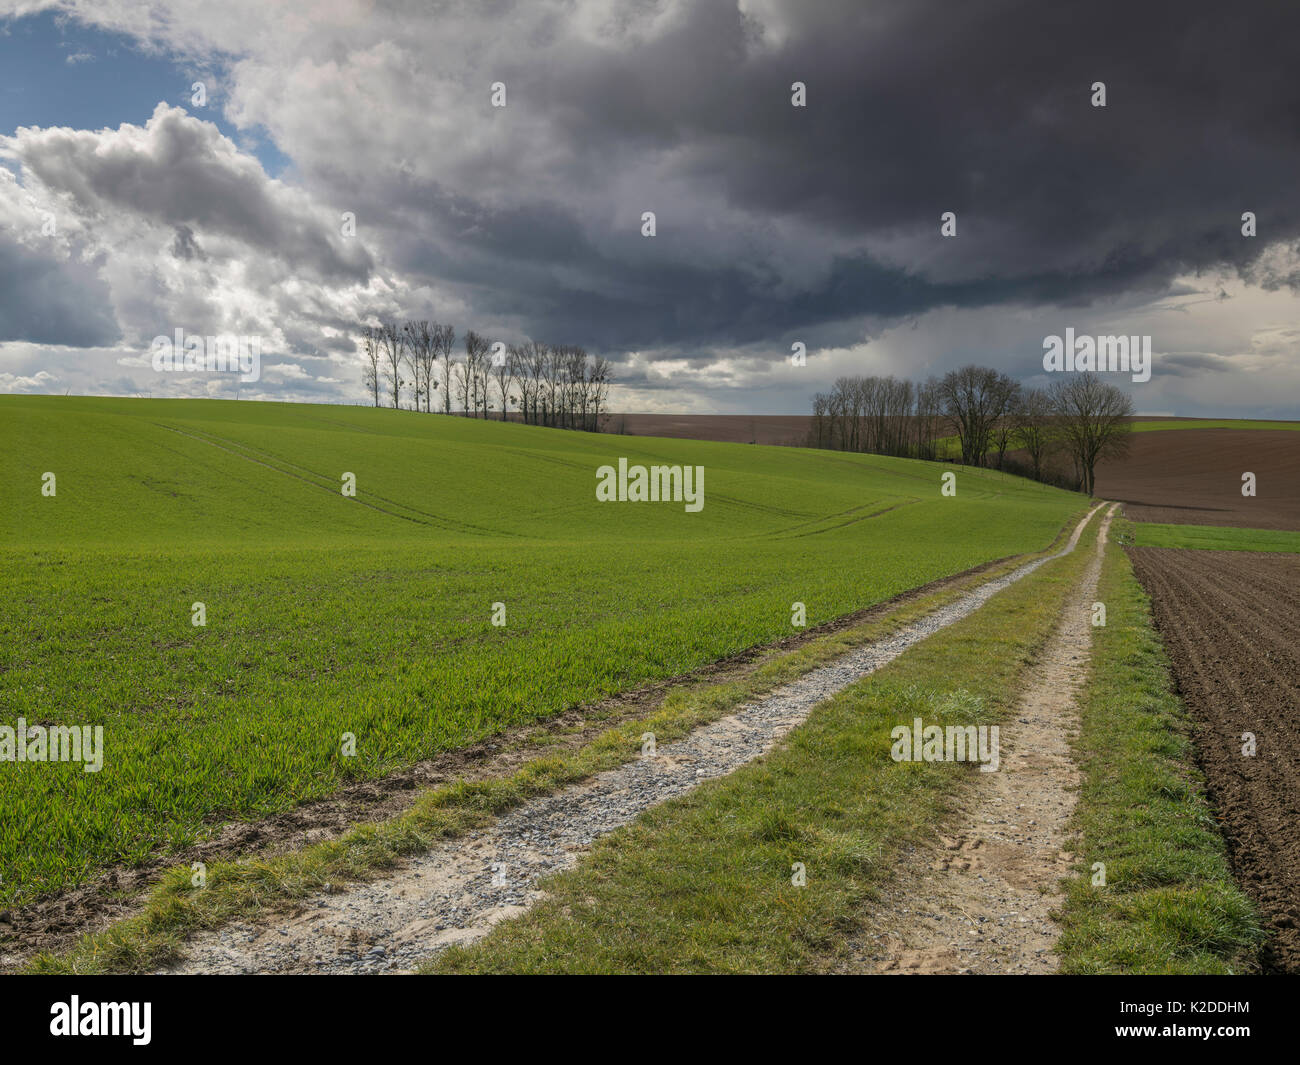 Country track with dark cumulonimbus clouds above,  Surfontaine, Picardy, France, March 2016. - Stock Image